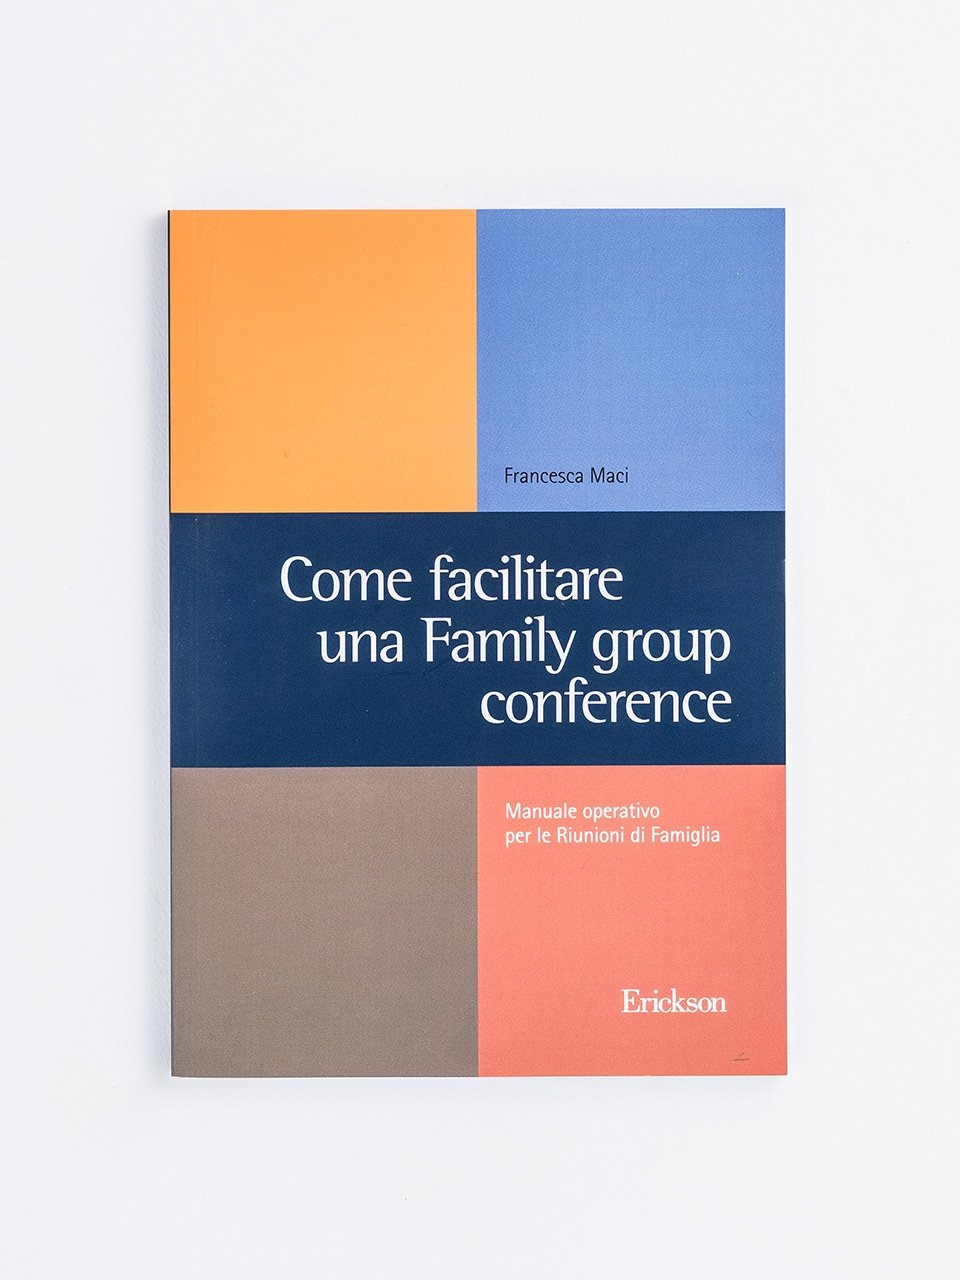 Come facilitare una Family group conference - Tutta un'altra storia - Libri - Erickson